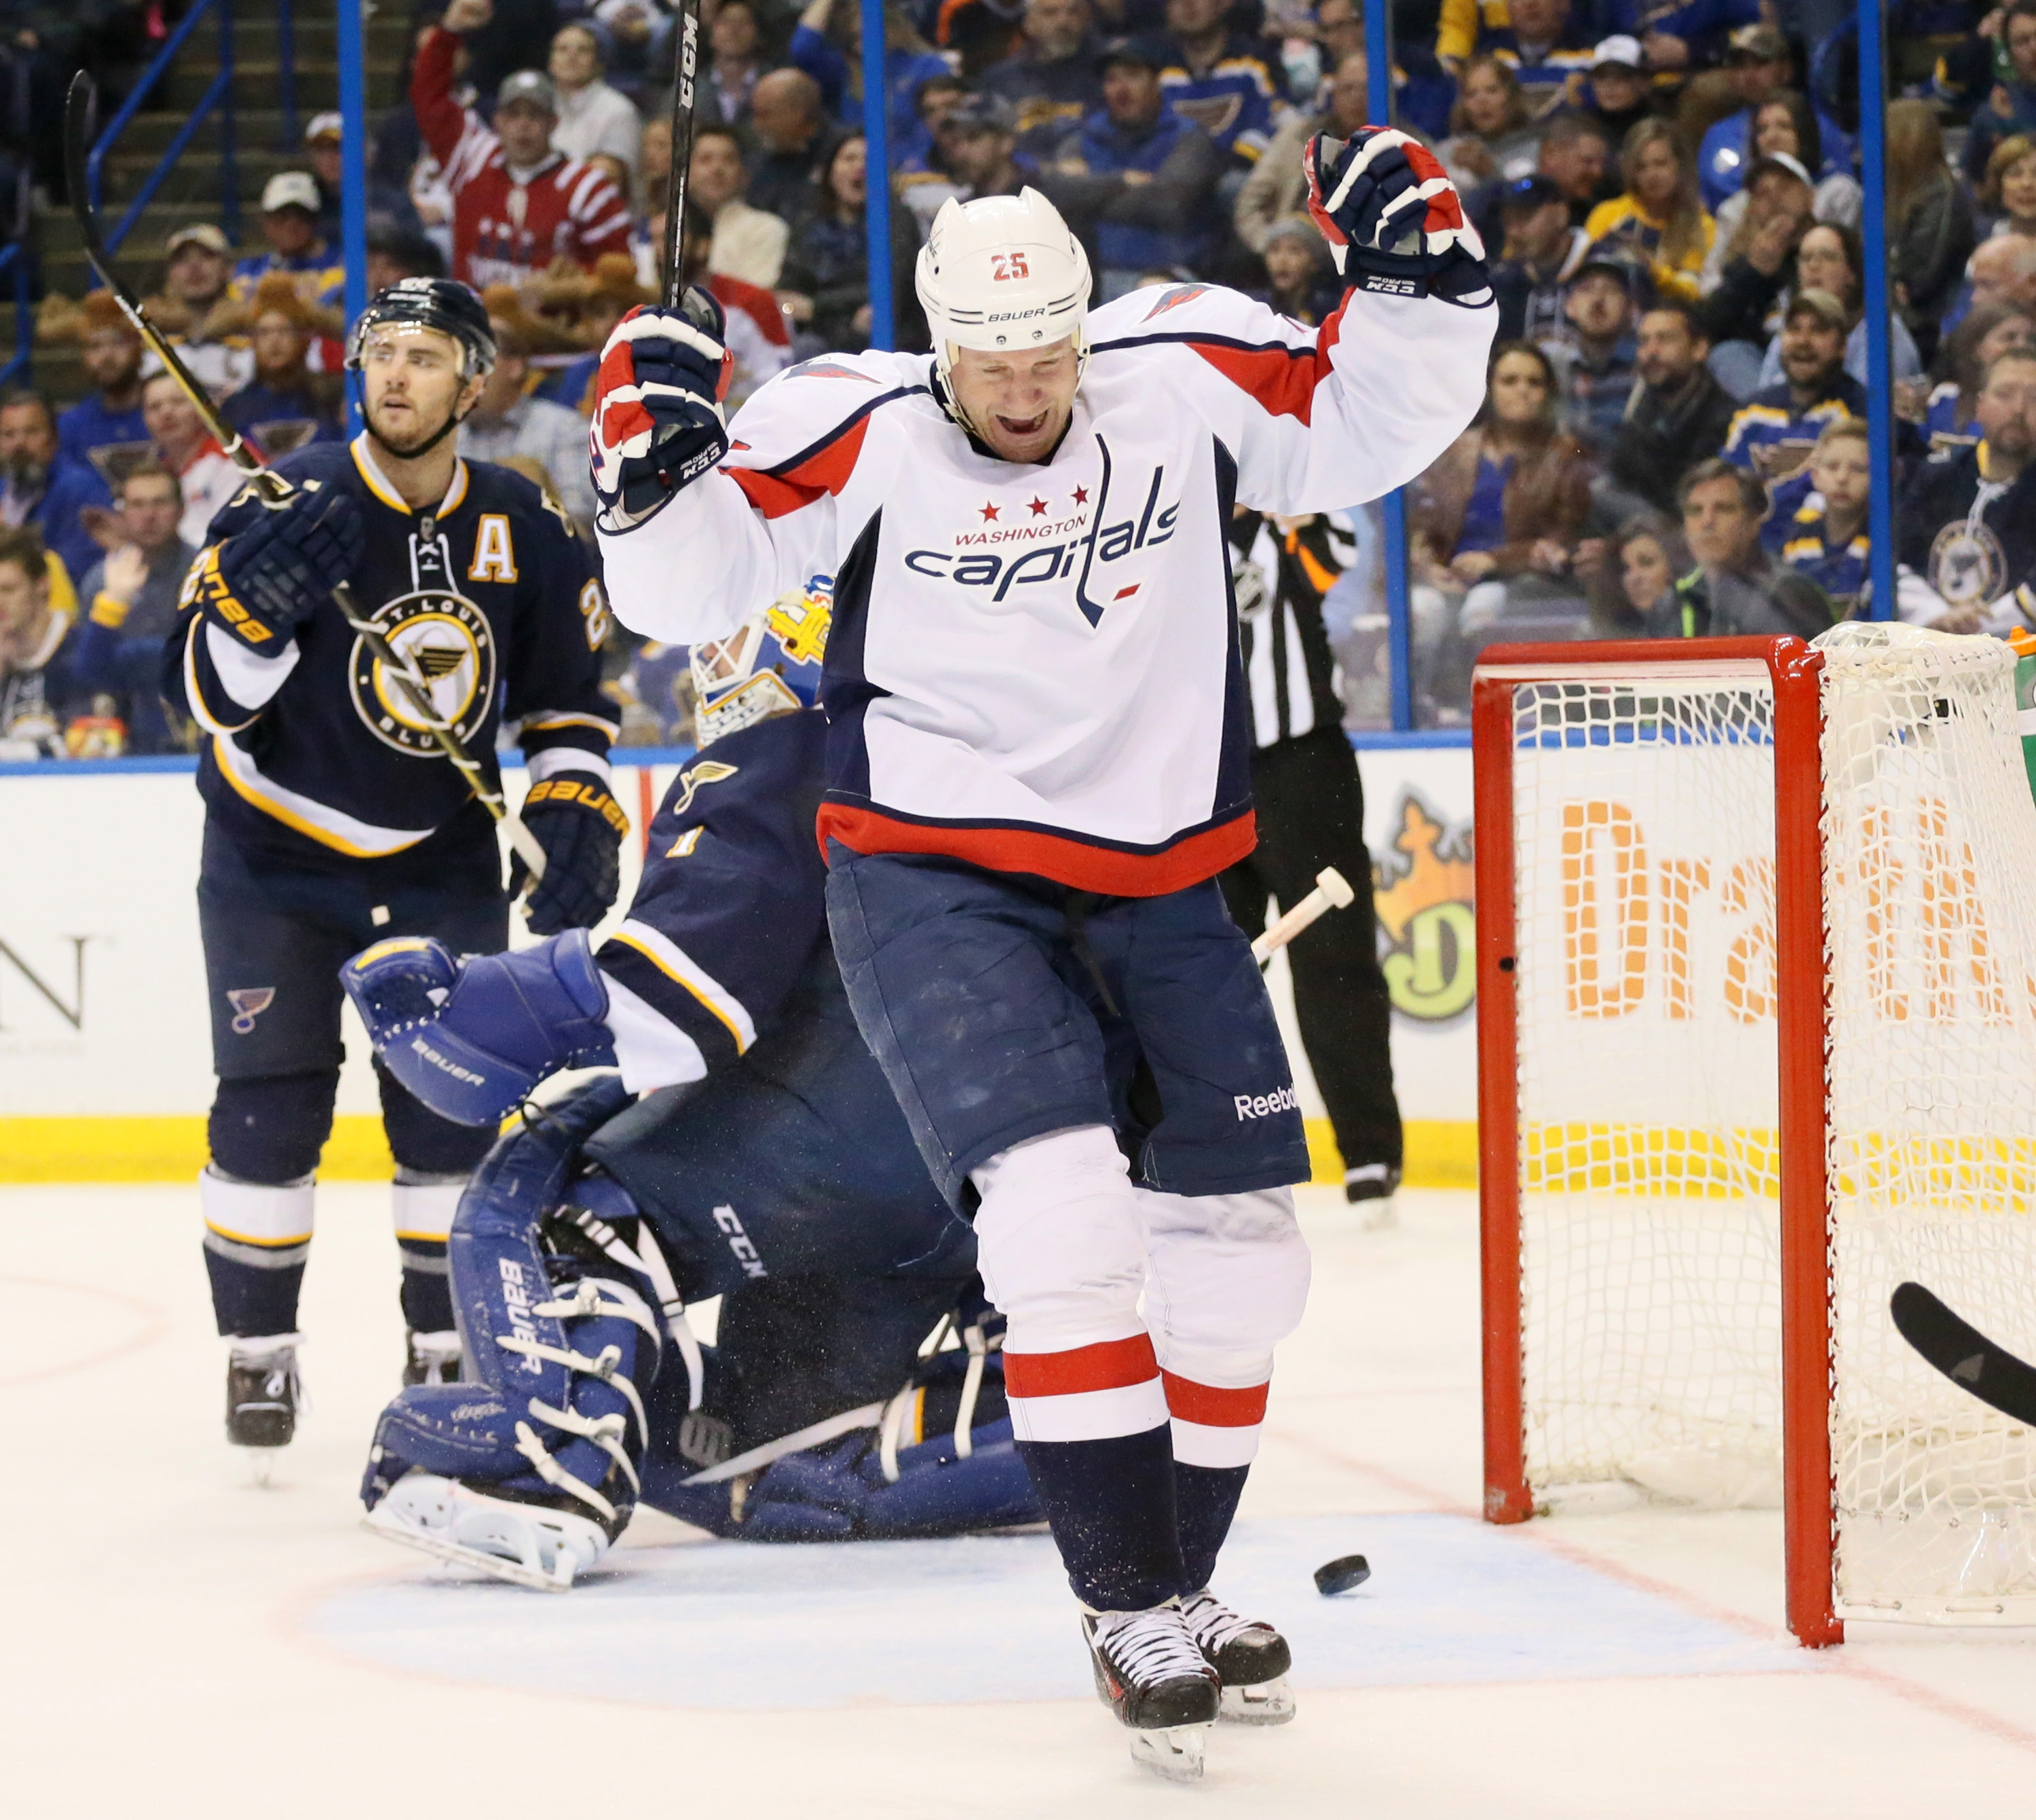 The Washington Capitals' Jason Chimera reacts after scoring past St. Louis Blues goaltender Brian Elliott in the second period on Saturday, April 9, 2016, at the Scottrade Center in St. Louis. The Caps won, 5-1. (Chris Lee/St. Louis Post-Dispatch/TNS)